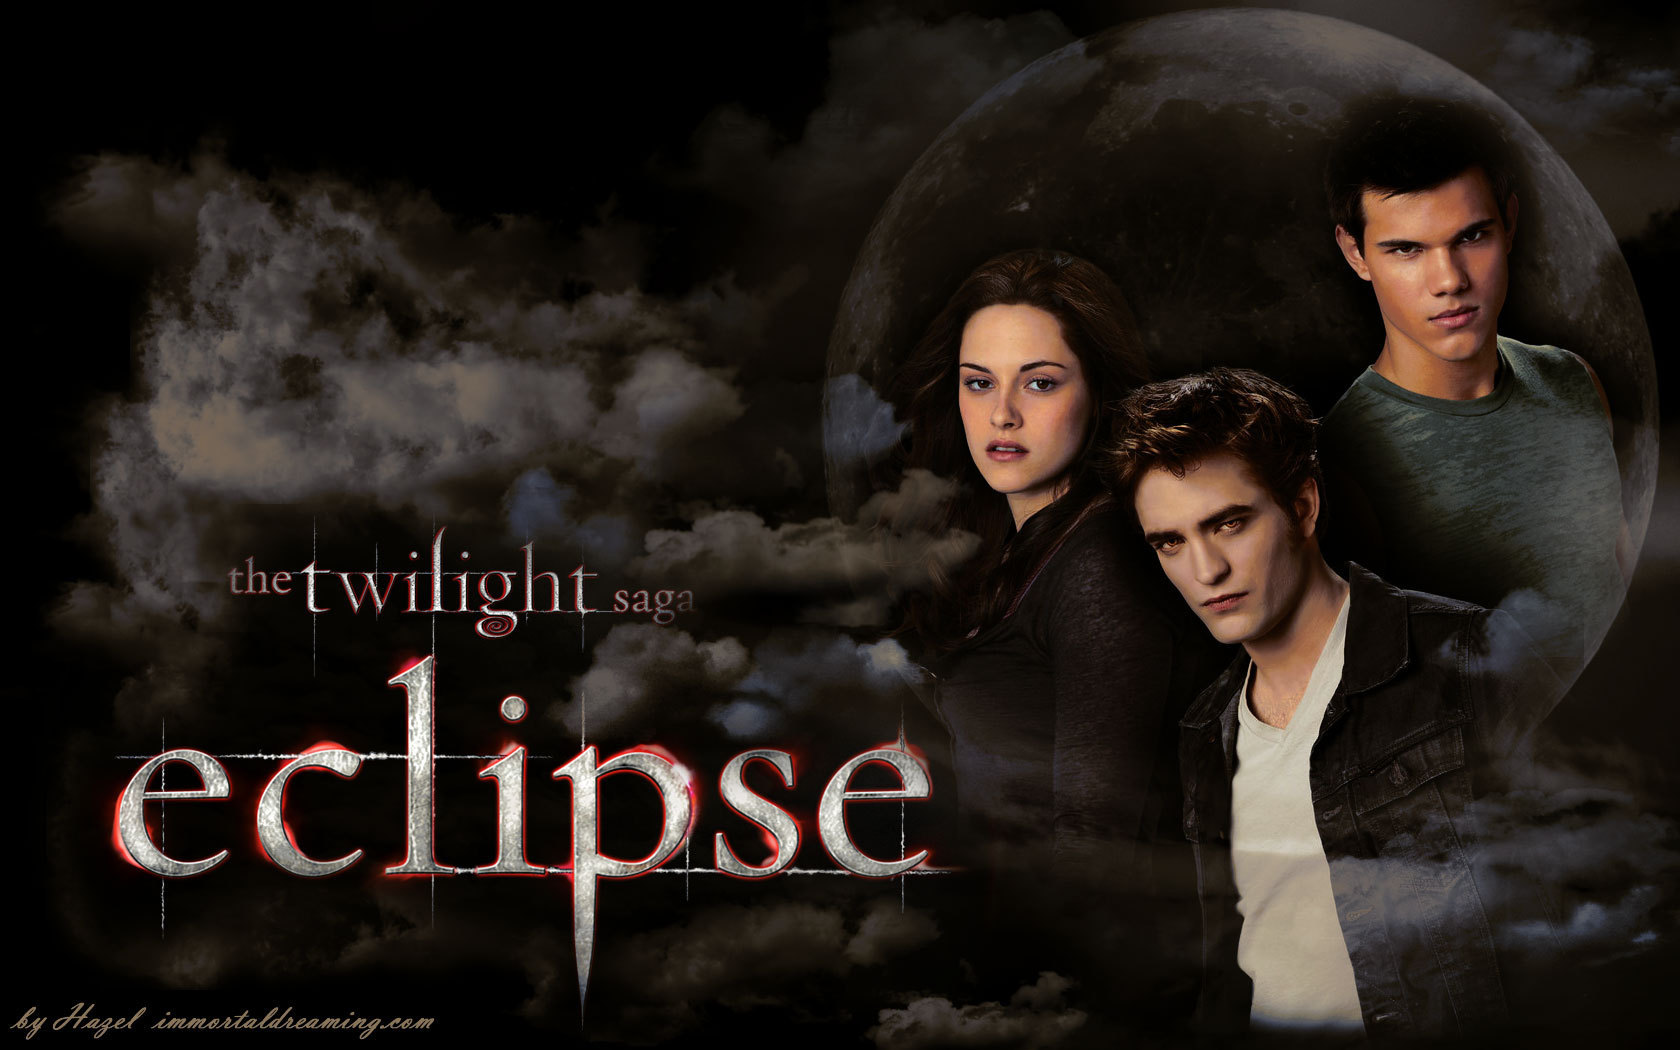 twilight series images eclipse - photo #15